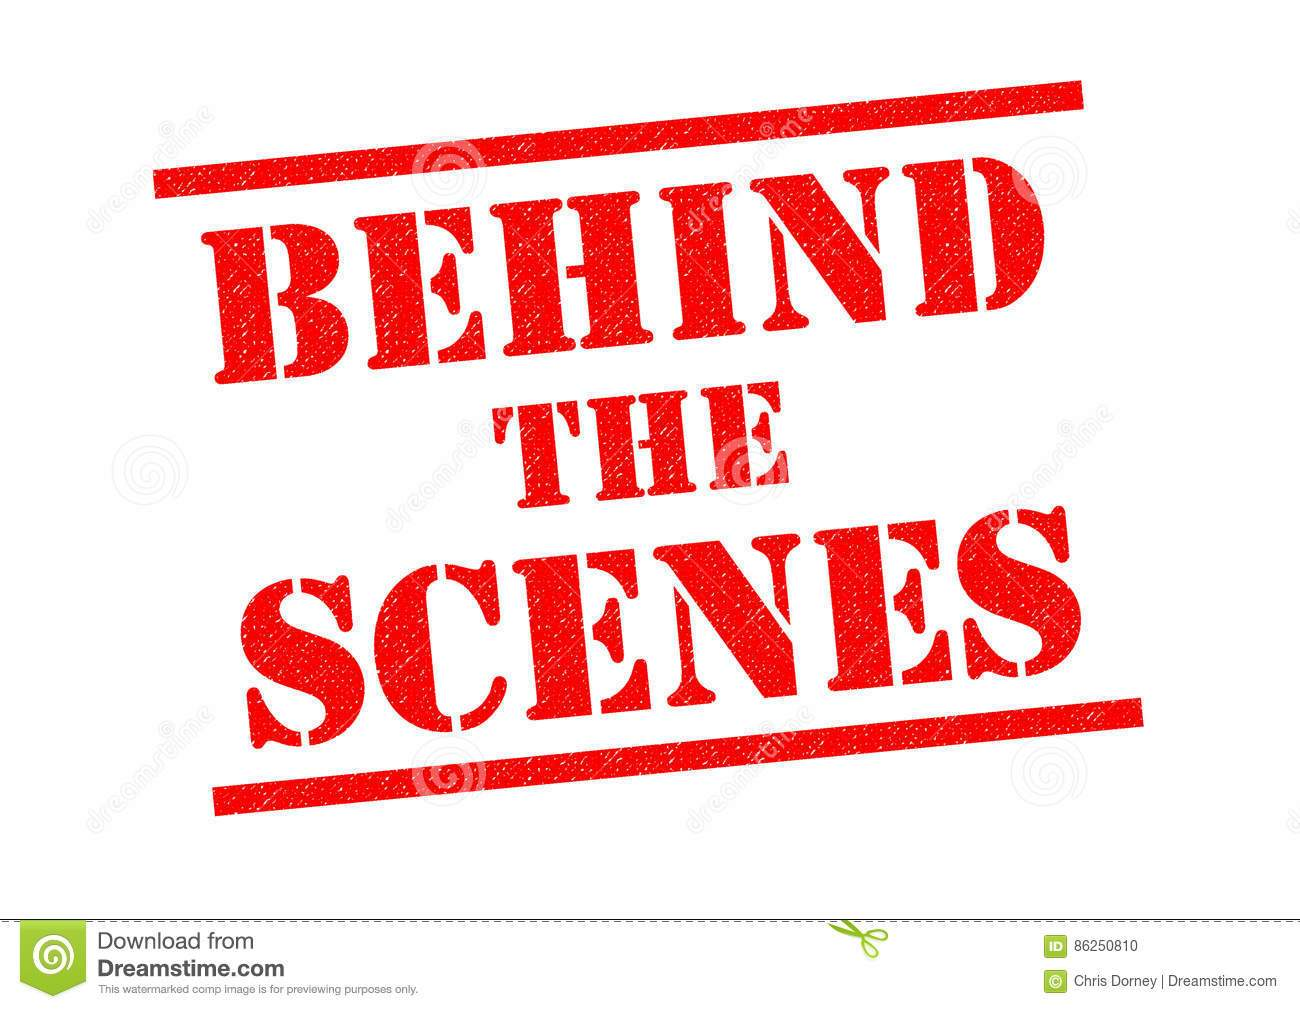 Behind the scenes clipart picture freeuse Behind the scenes clipart 1 » Clipart Portal picture freeuse